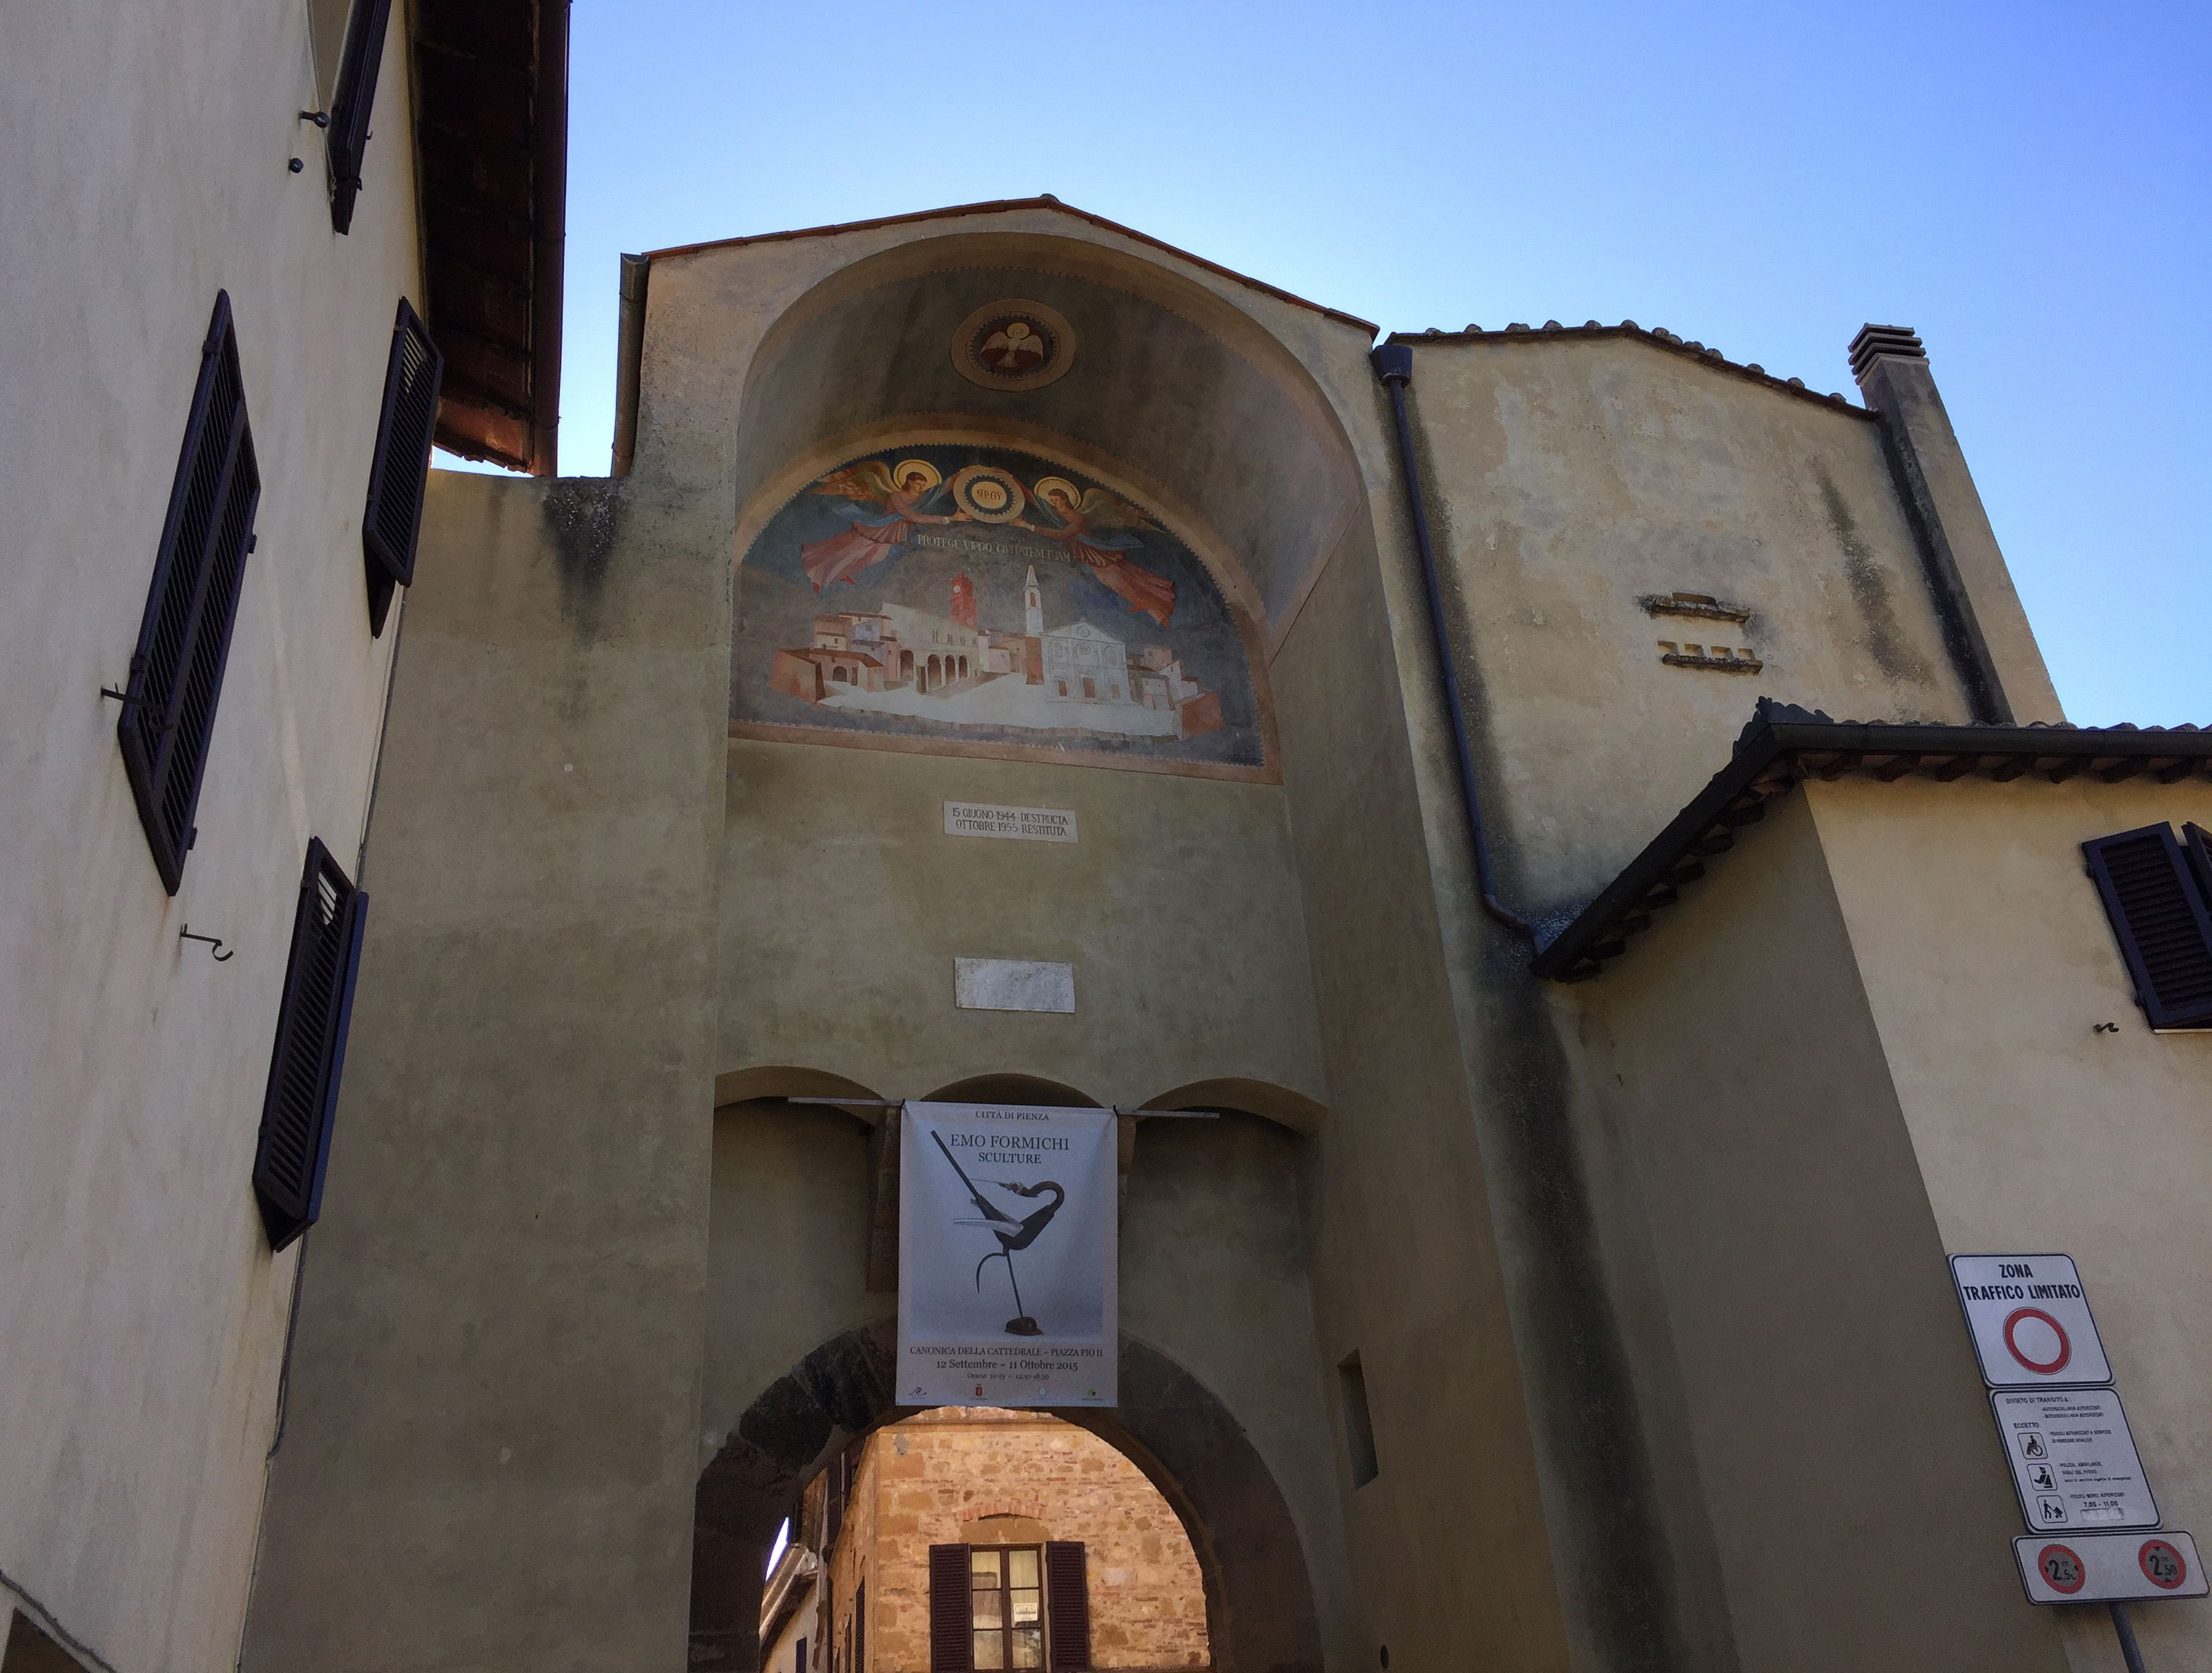 It was in Pienza, a little village in southern Tuscany that Renaissance town-planning concepts were first put into practice after Pope Pius II decided, in 1459, to transform the look of his birthplace. He chose the architect Bernardo Rossellino, who applied the principles of his mentor, Leon Battista Alberti. This new vision of urban space was realized in the superb square known as Piazza Pio II and the buildings around it: the Piccolomini Palace, the Borgia Palace and the cathedral with its pure Renaissance exterior and an interior in the late Gothic style of south German churches.